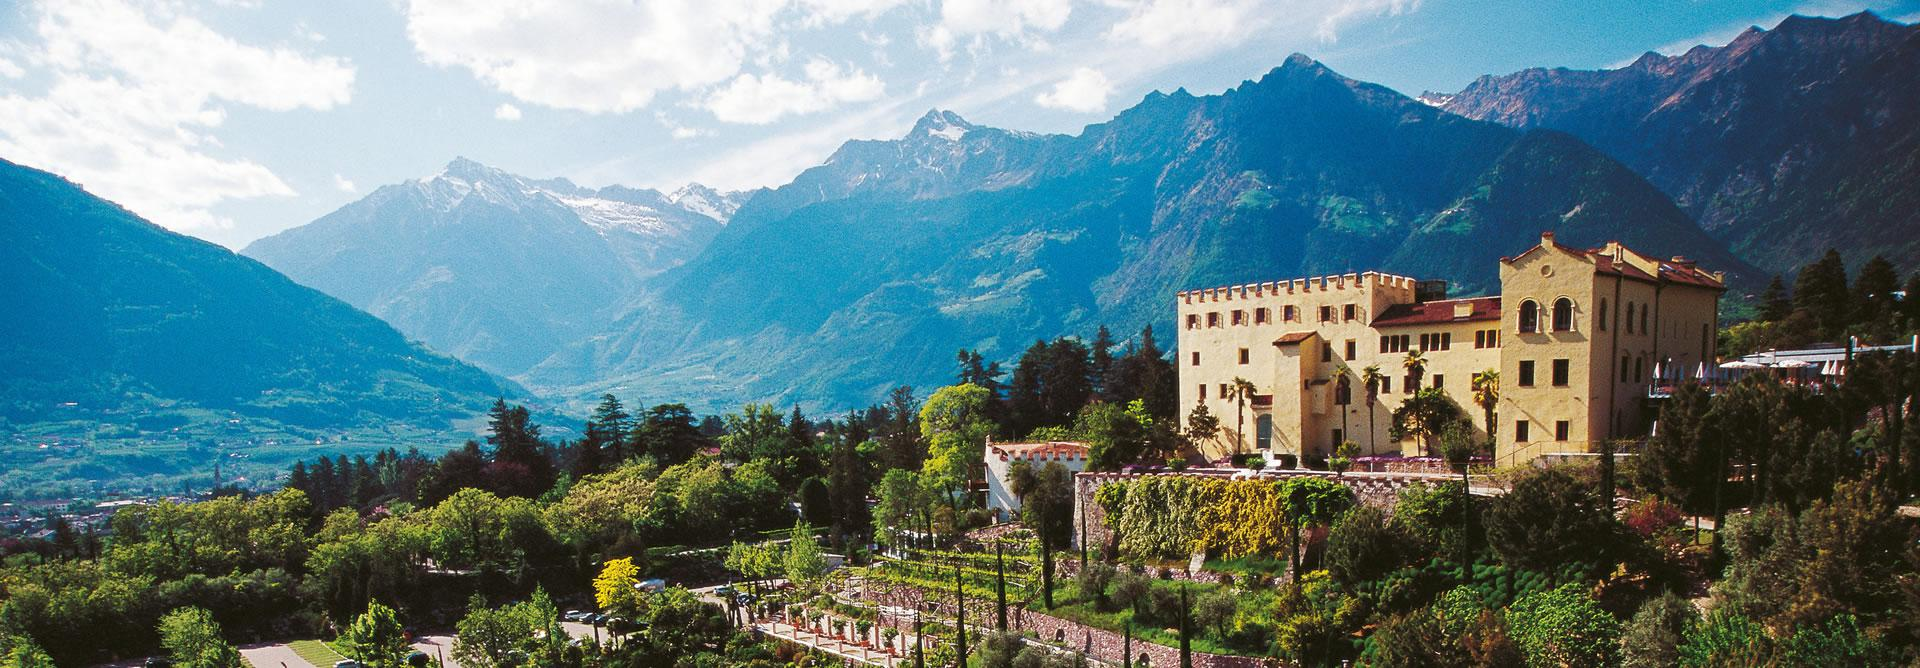 Wellness in Meran: Oase der Ruhe